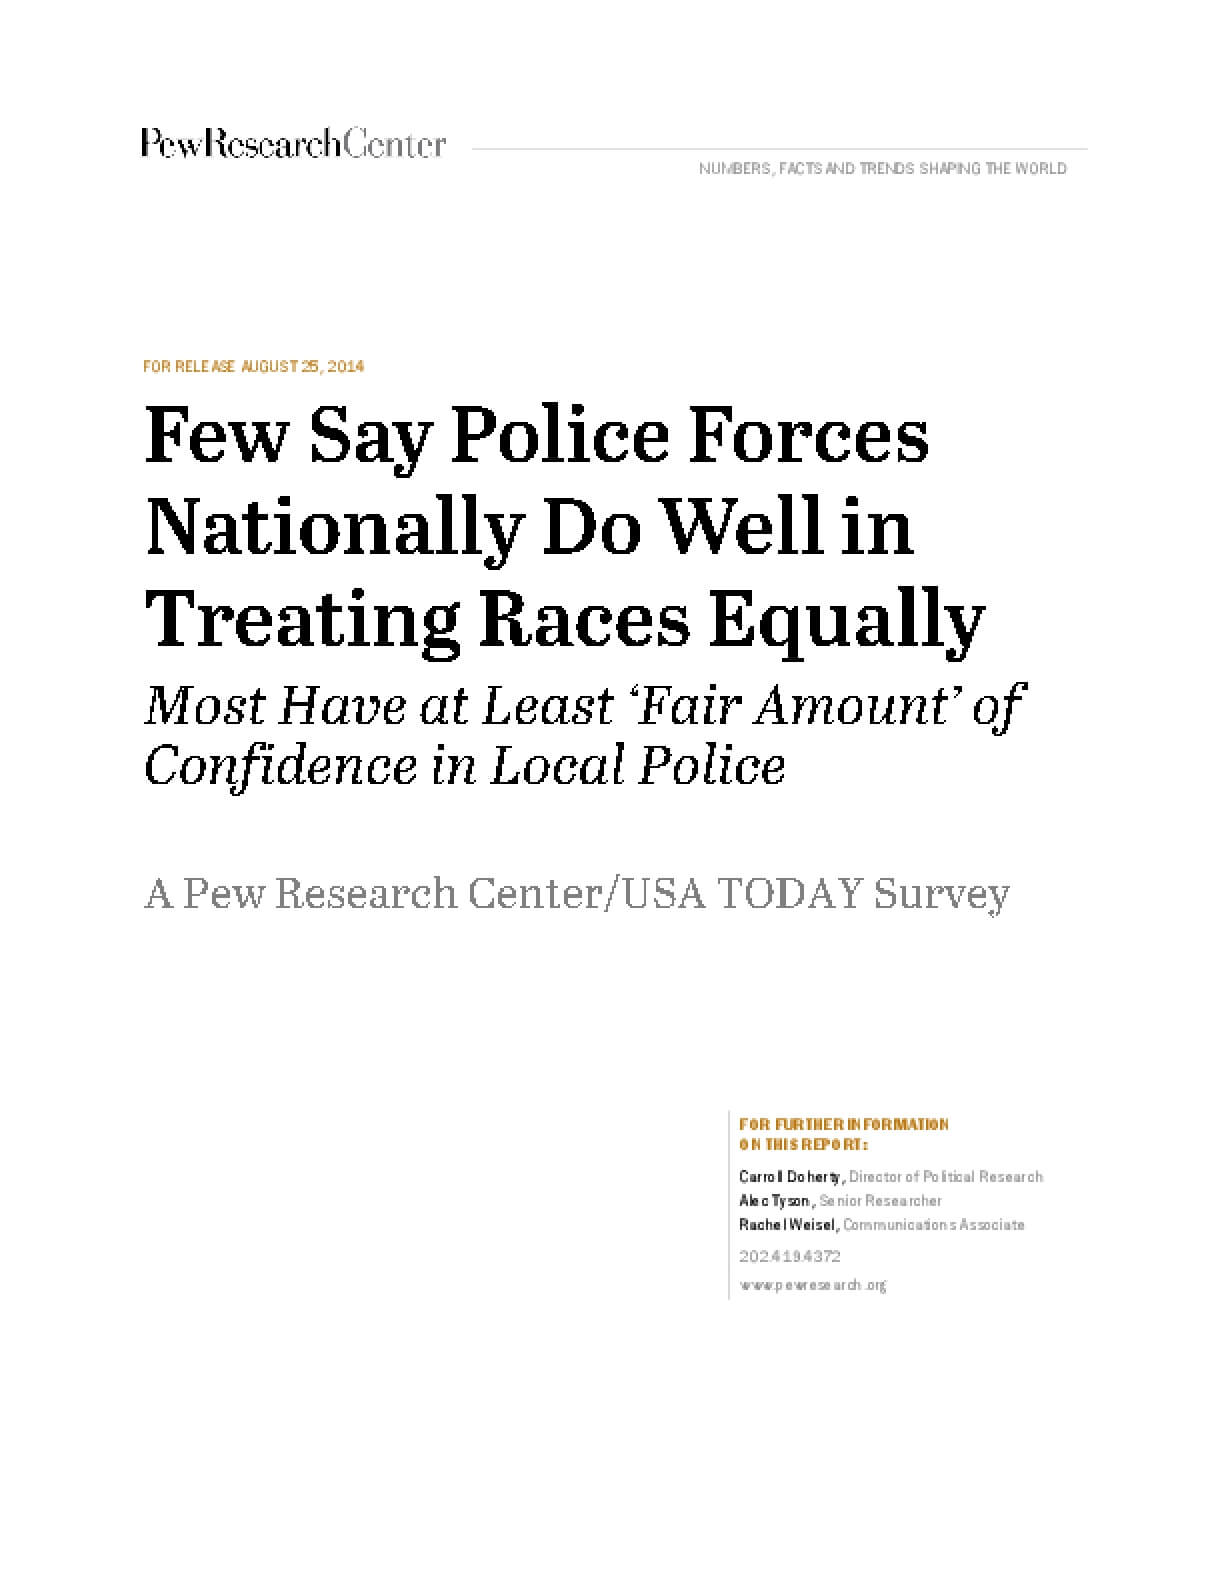 Few Say Police Forces Nationally Do Well in Treating Races Equally